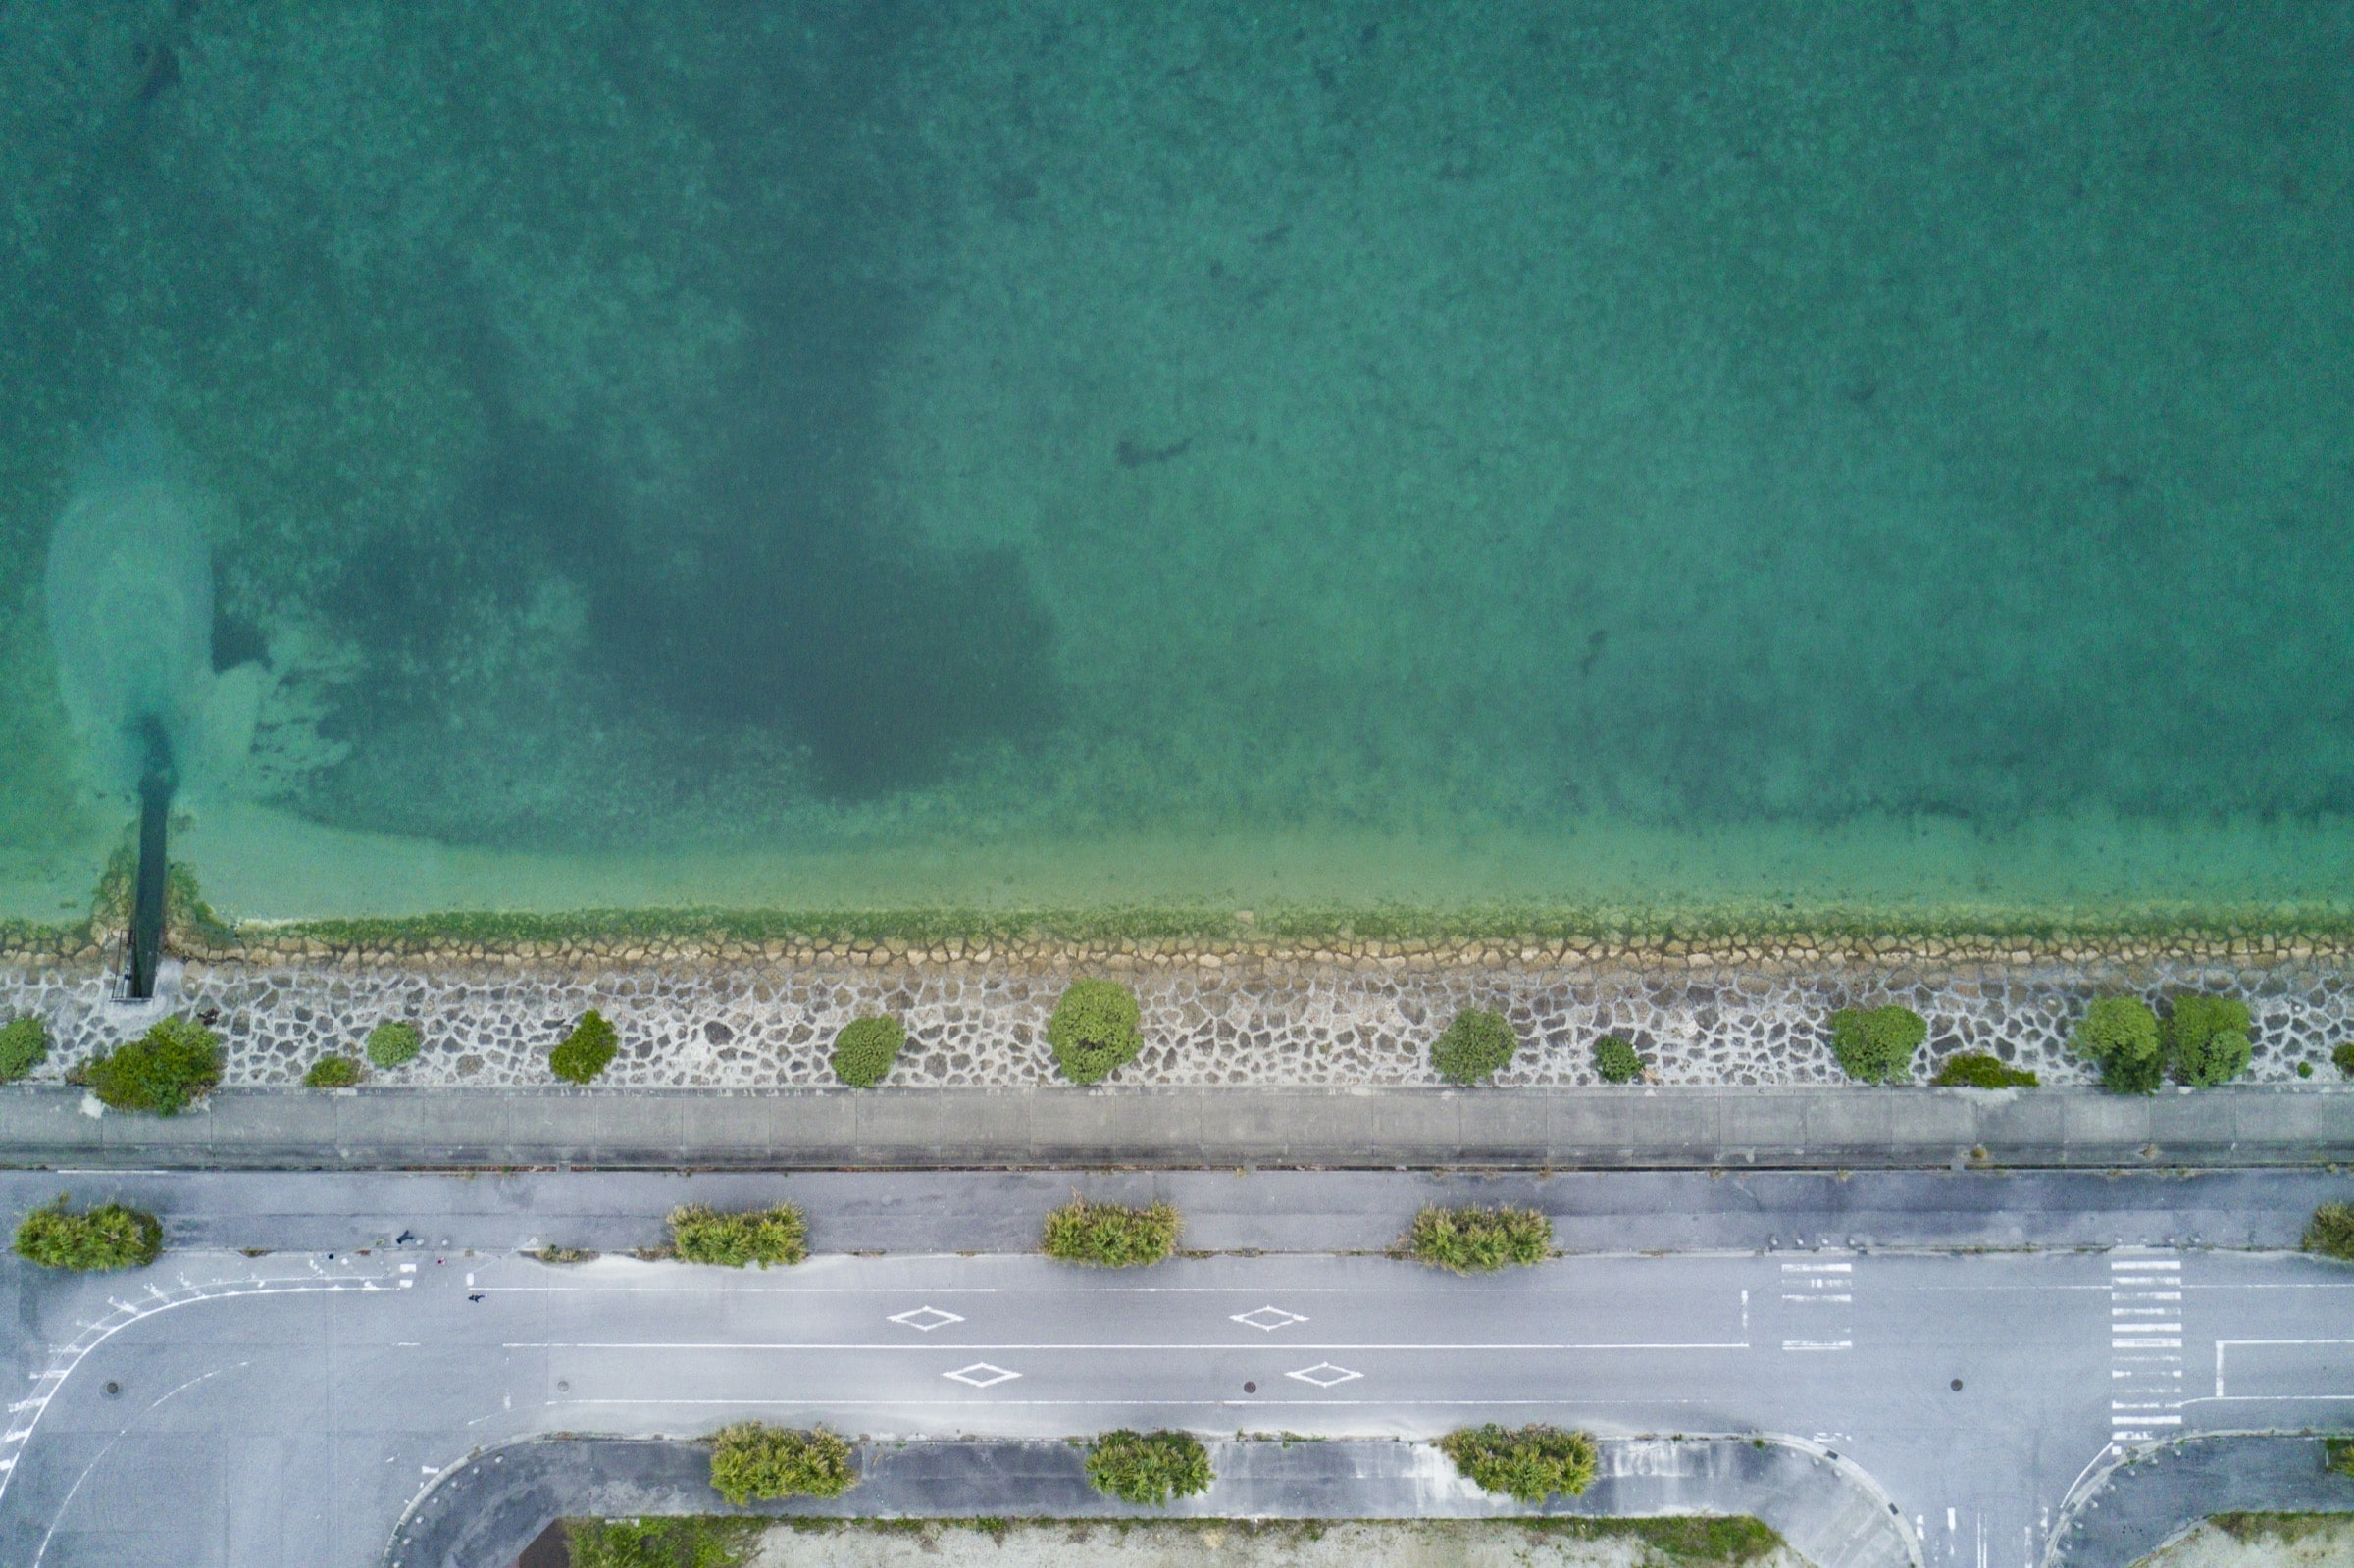 bird's photography of road near body of water